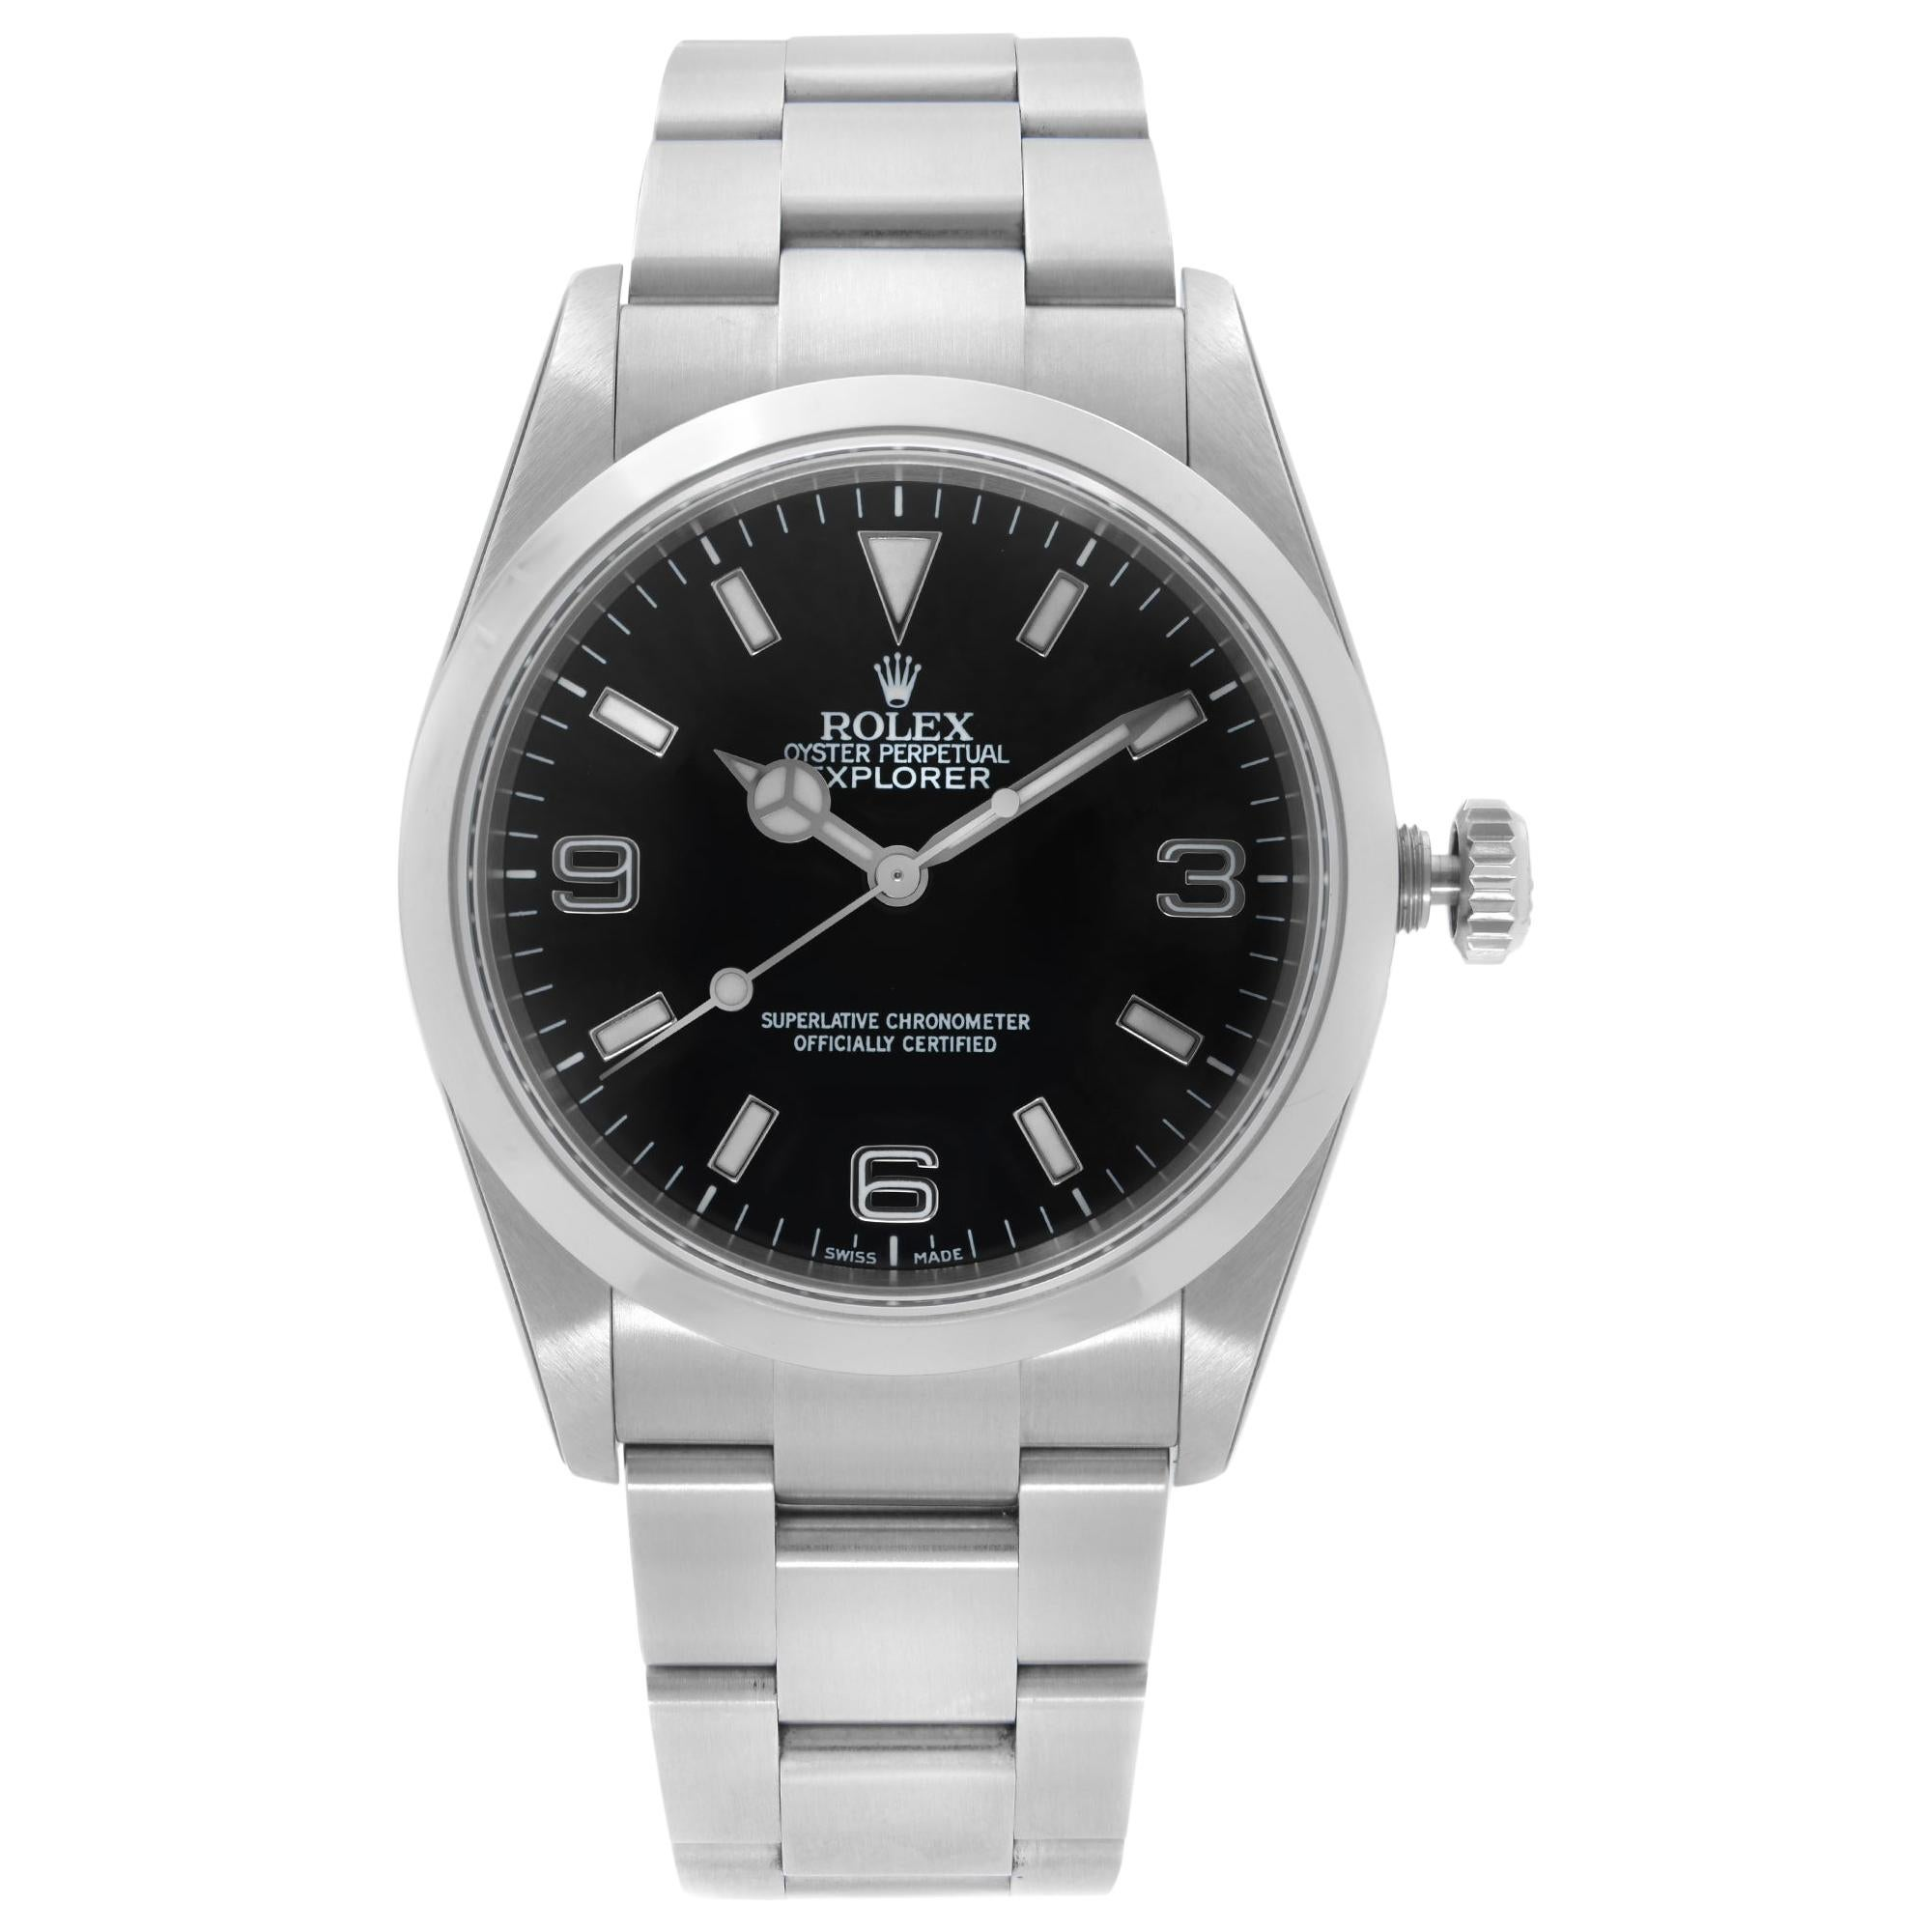 Rolex Explorer Stainless Steel Black Dial Automatic Men's Watch 114270